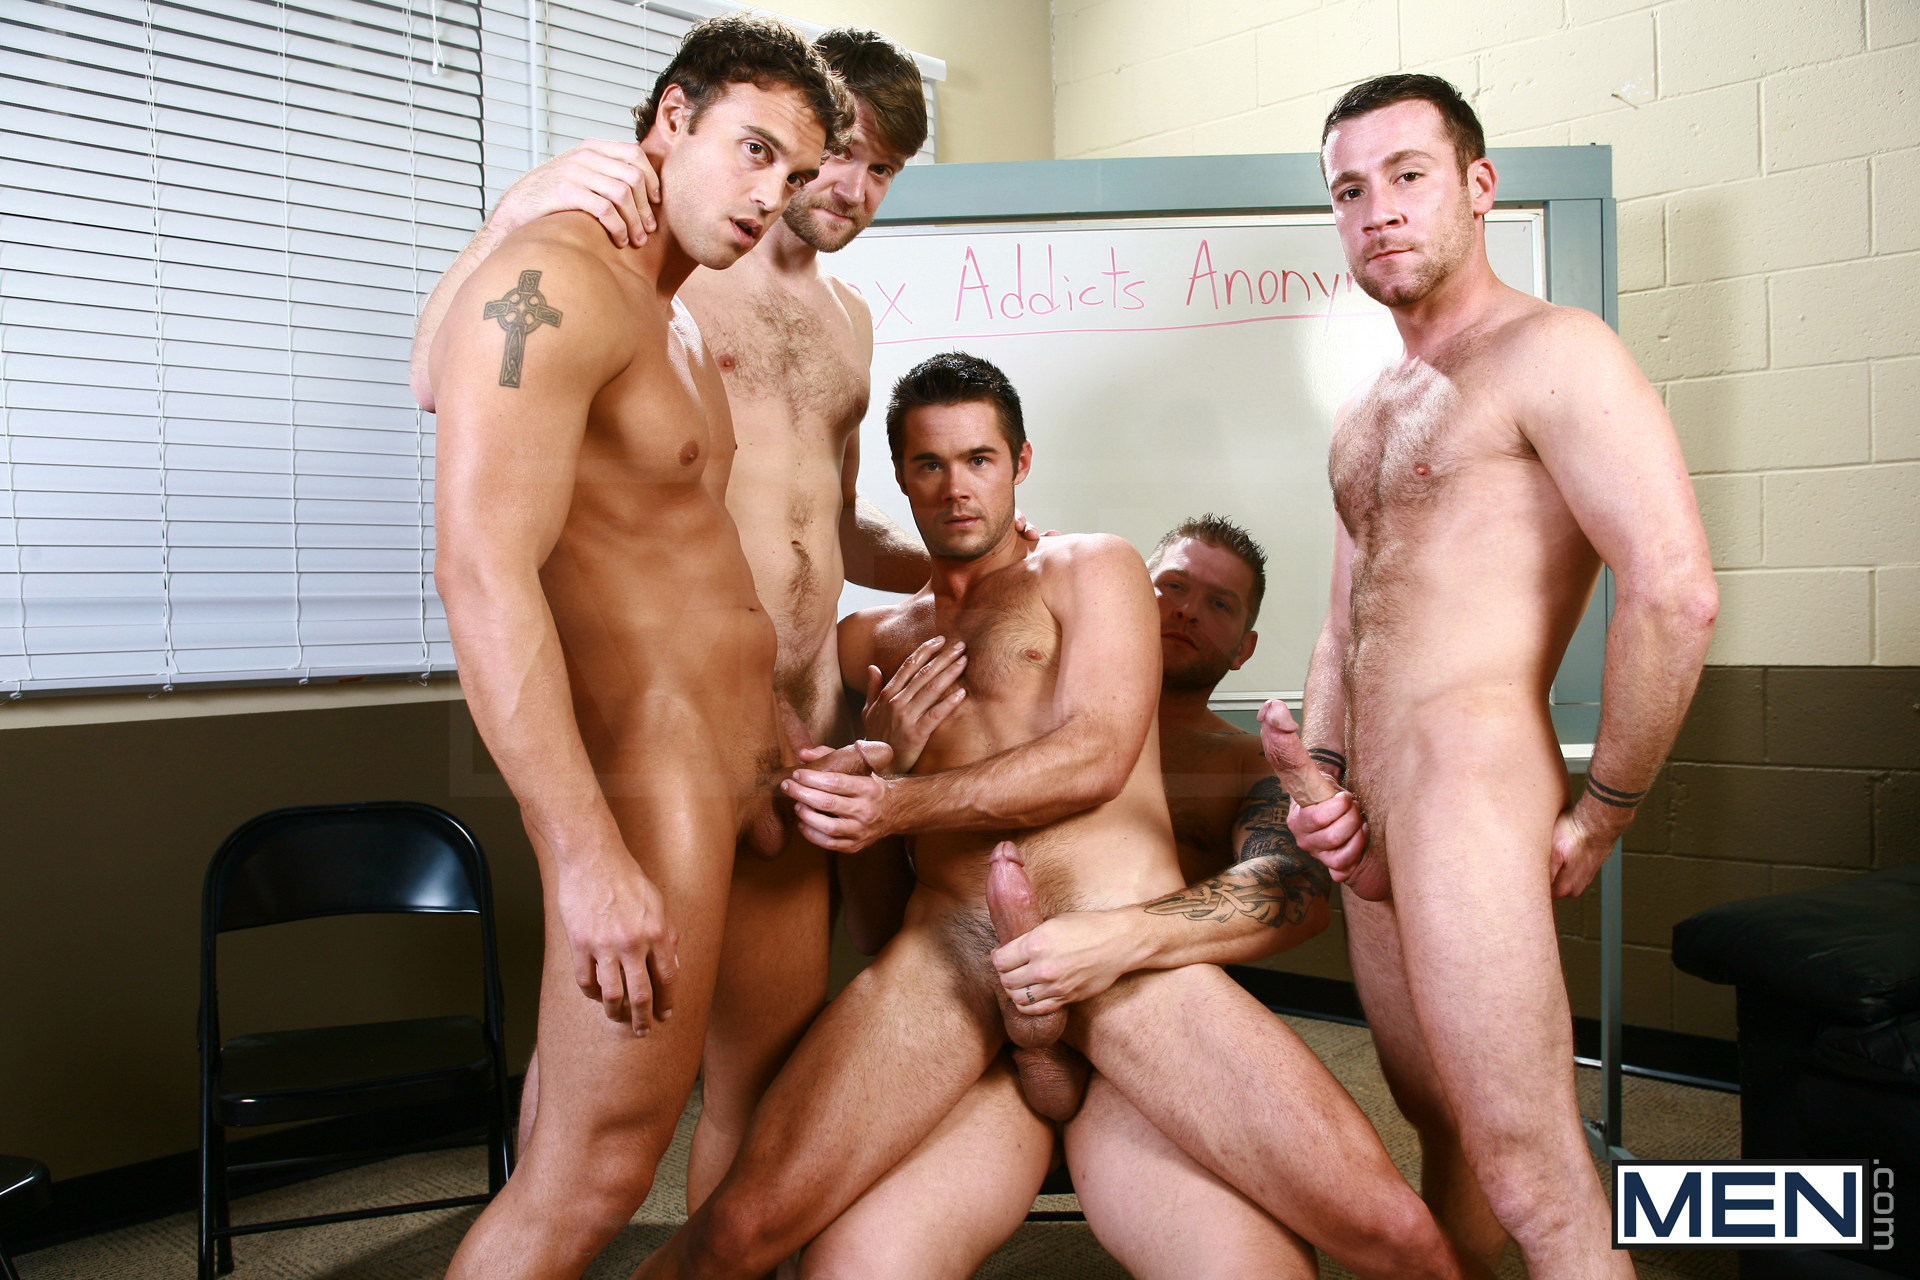 Four guys with huge muscles and boners whip them out for gay group sex.